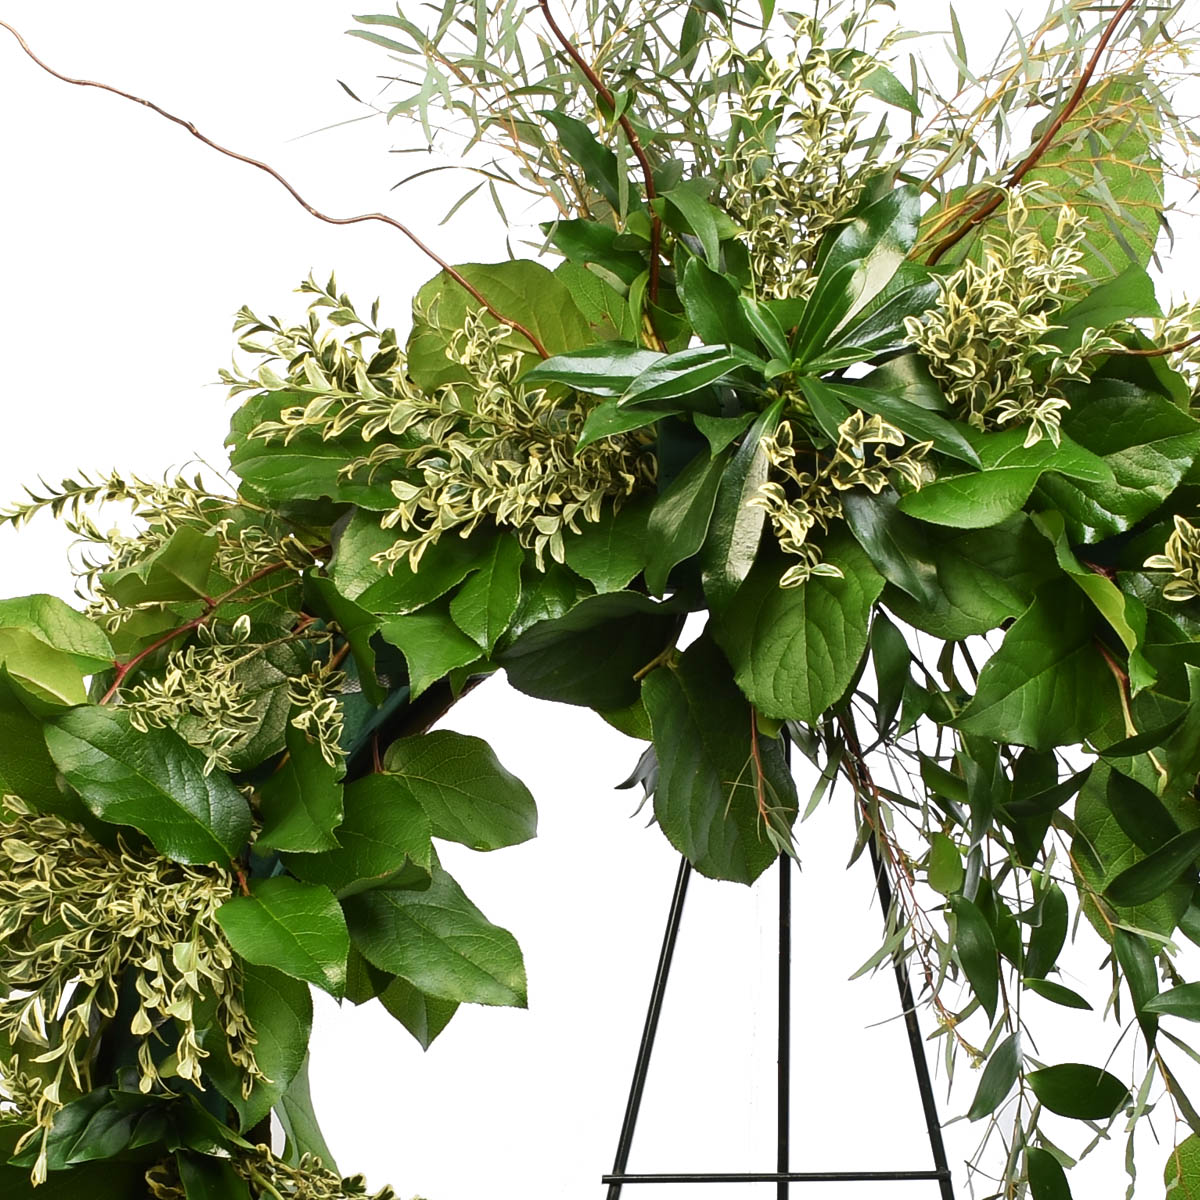 Funeral wreath made of plants in Vancouver